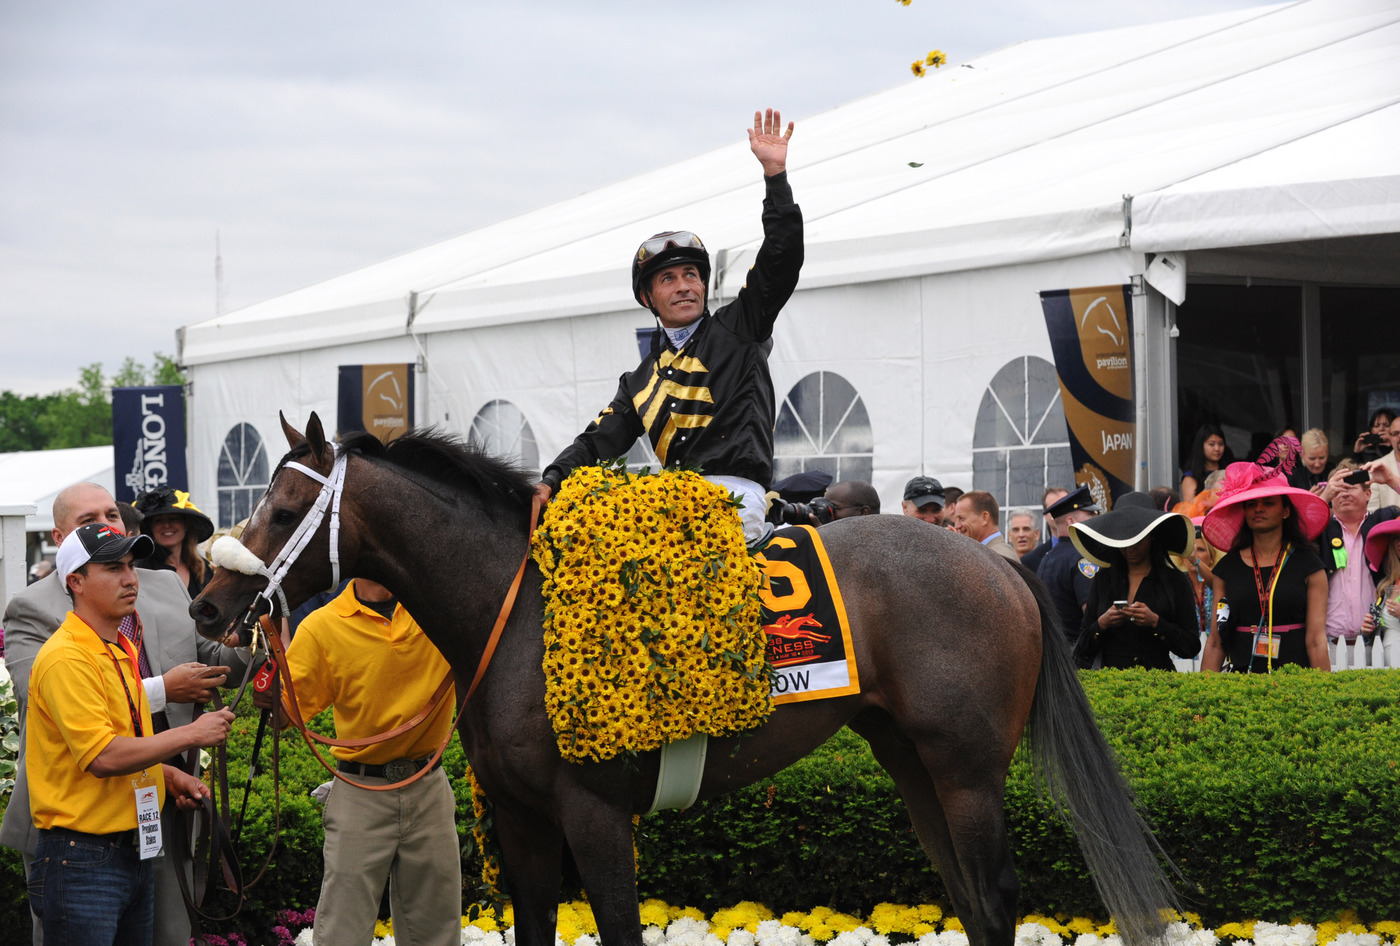 Longines Flat Racing Event: Longines awards luxury timepieces to owner, trainer and jockey of Preakness Stakes winner, Oxbow 2